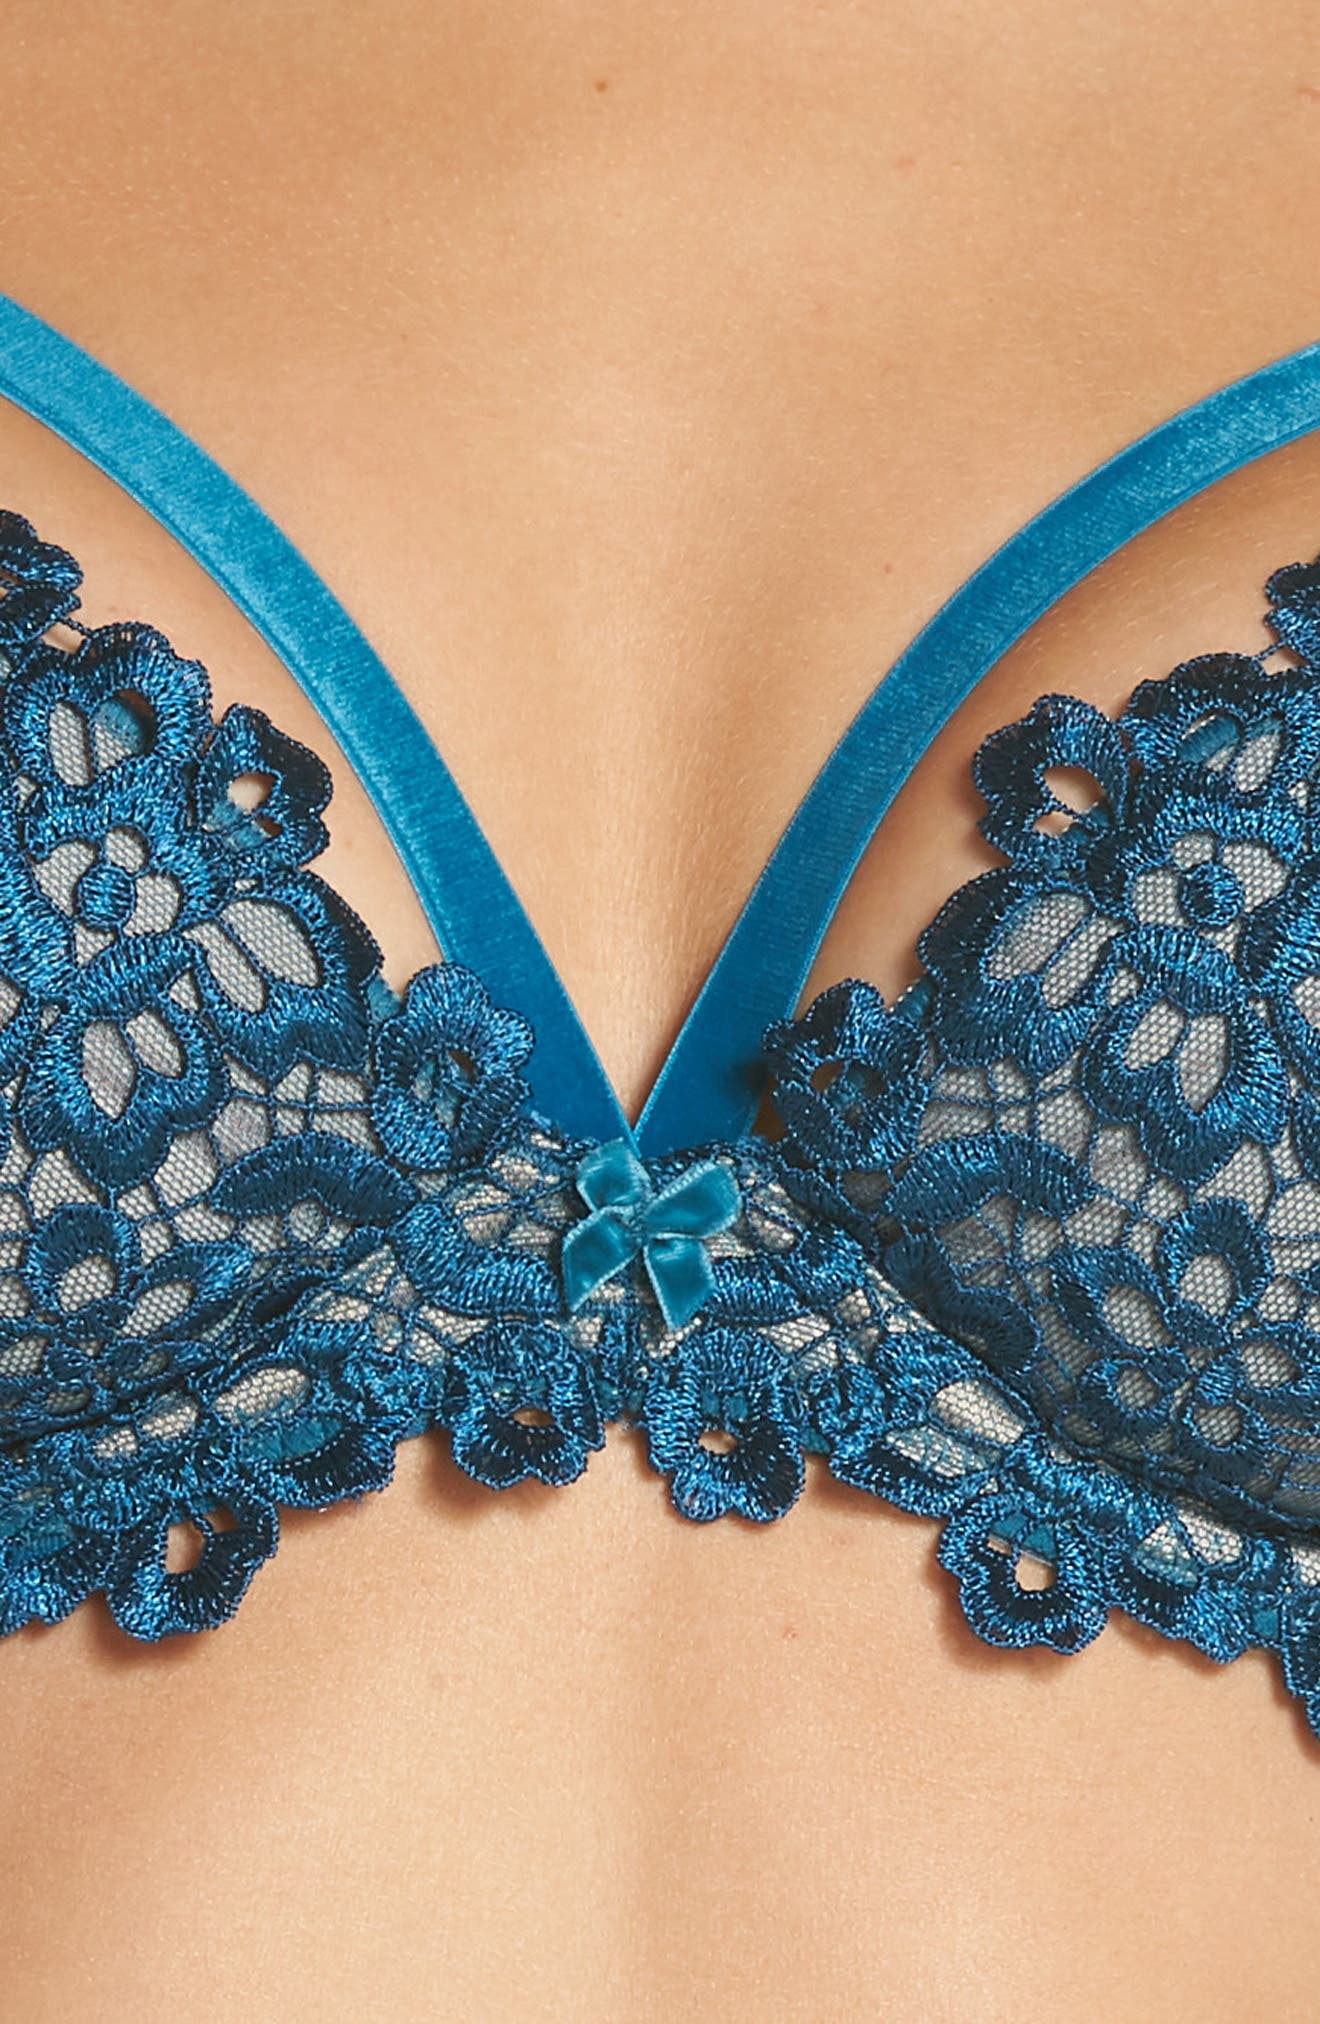 Underwire Balconette Bra,                             Alternate thumbnail 7, color,                             Peacock